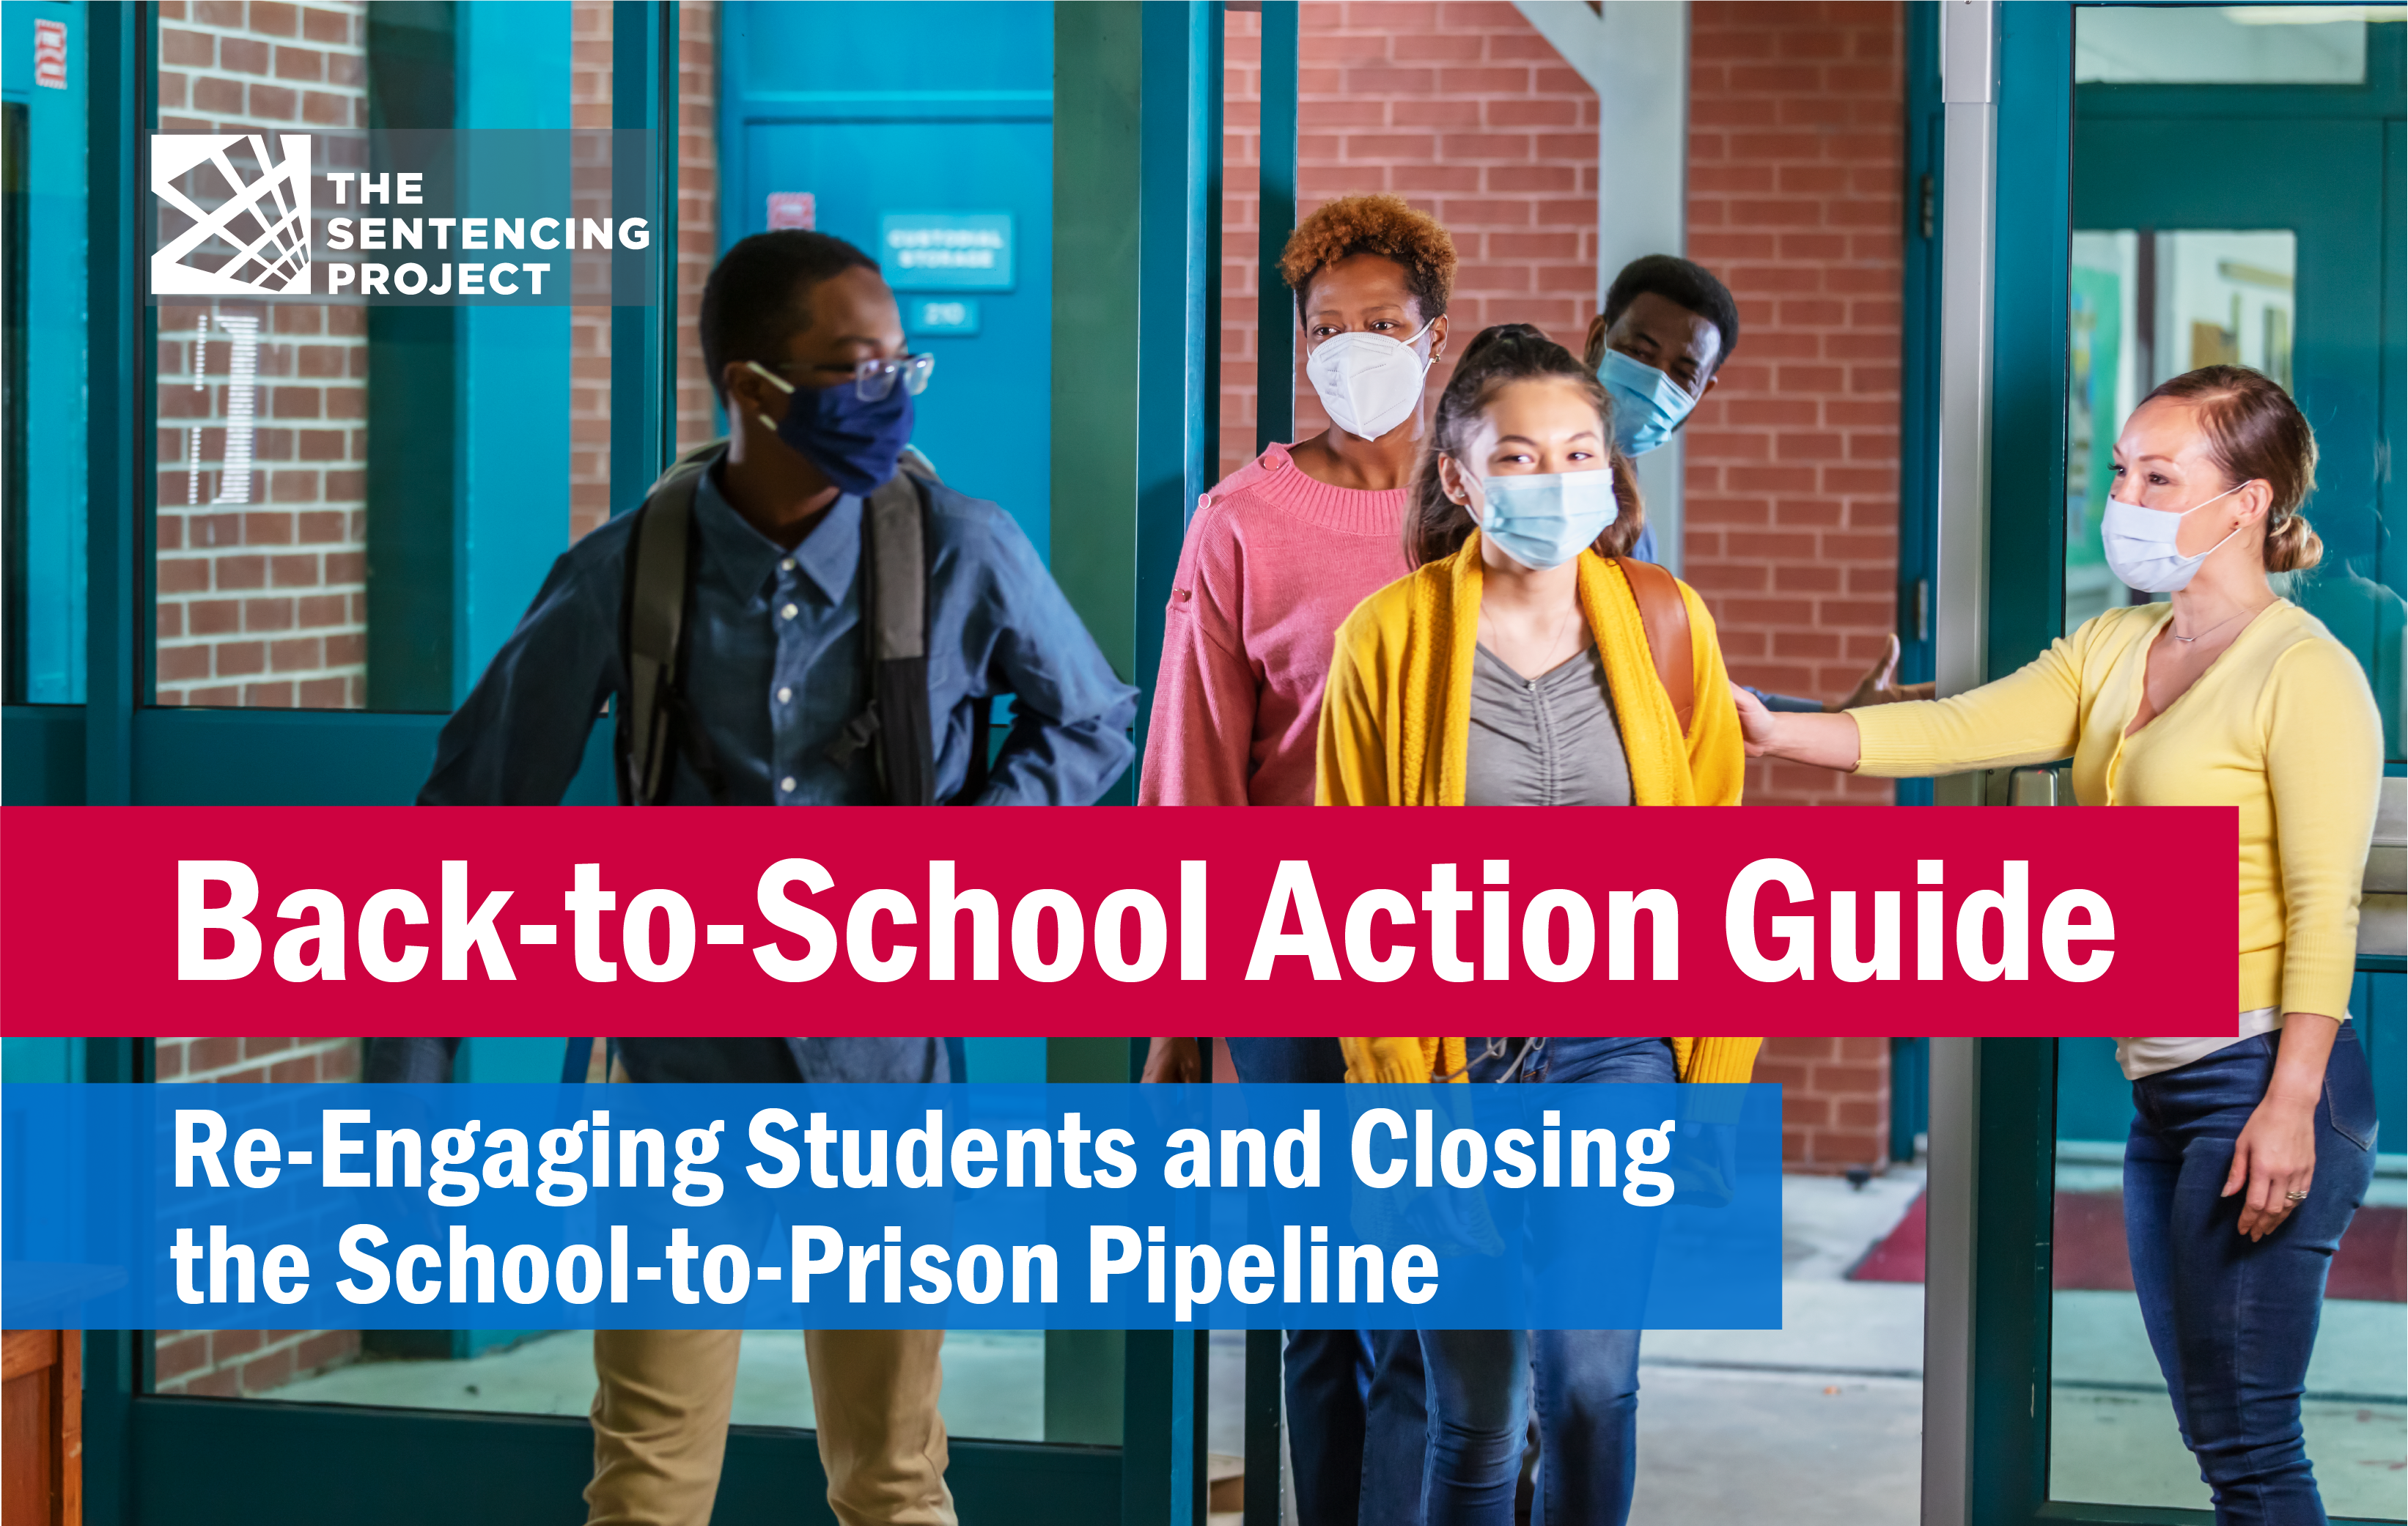 Back-to-School Action Guide: Re-Engaging Students and Closing the School-to-Prison Pipeline